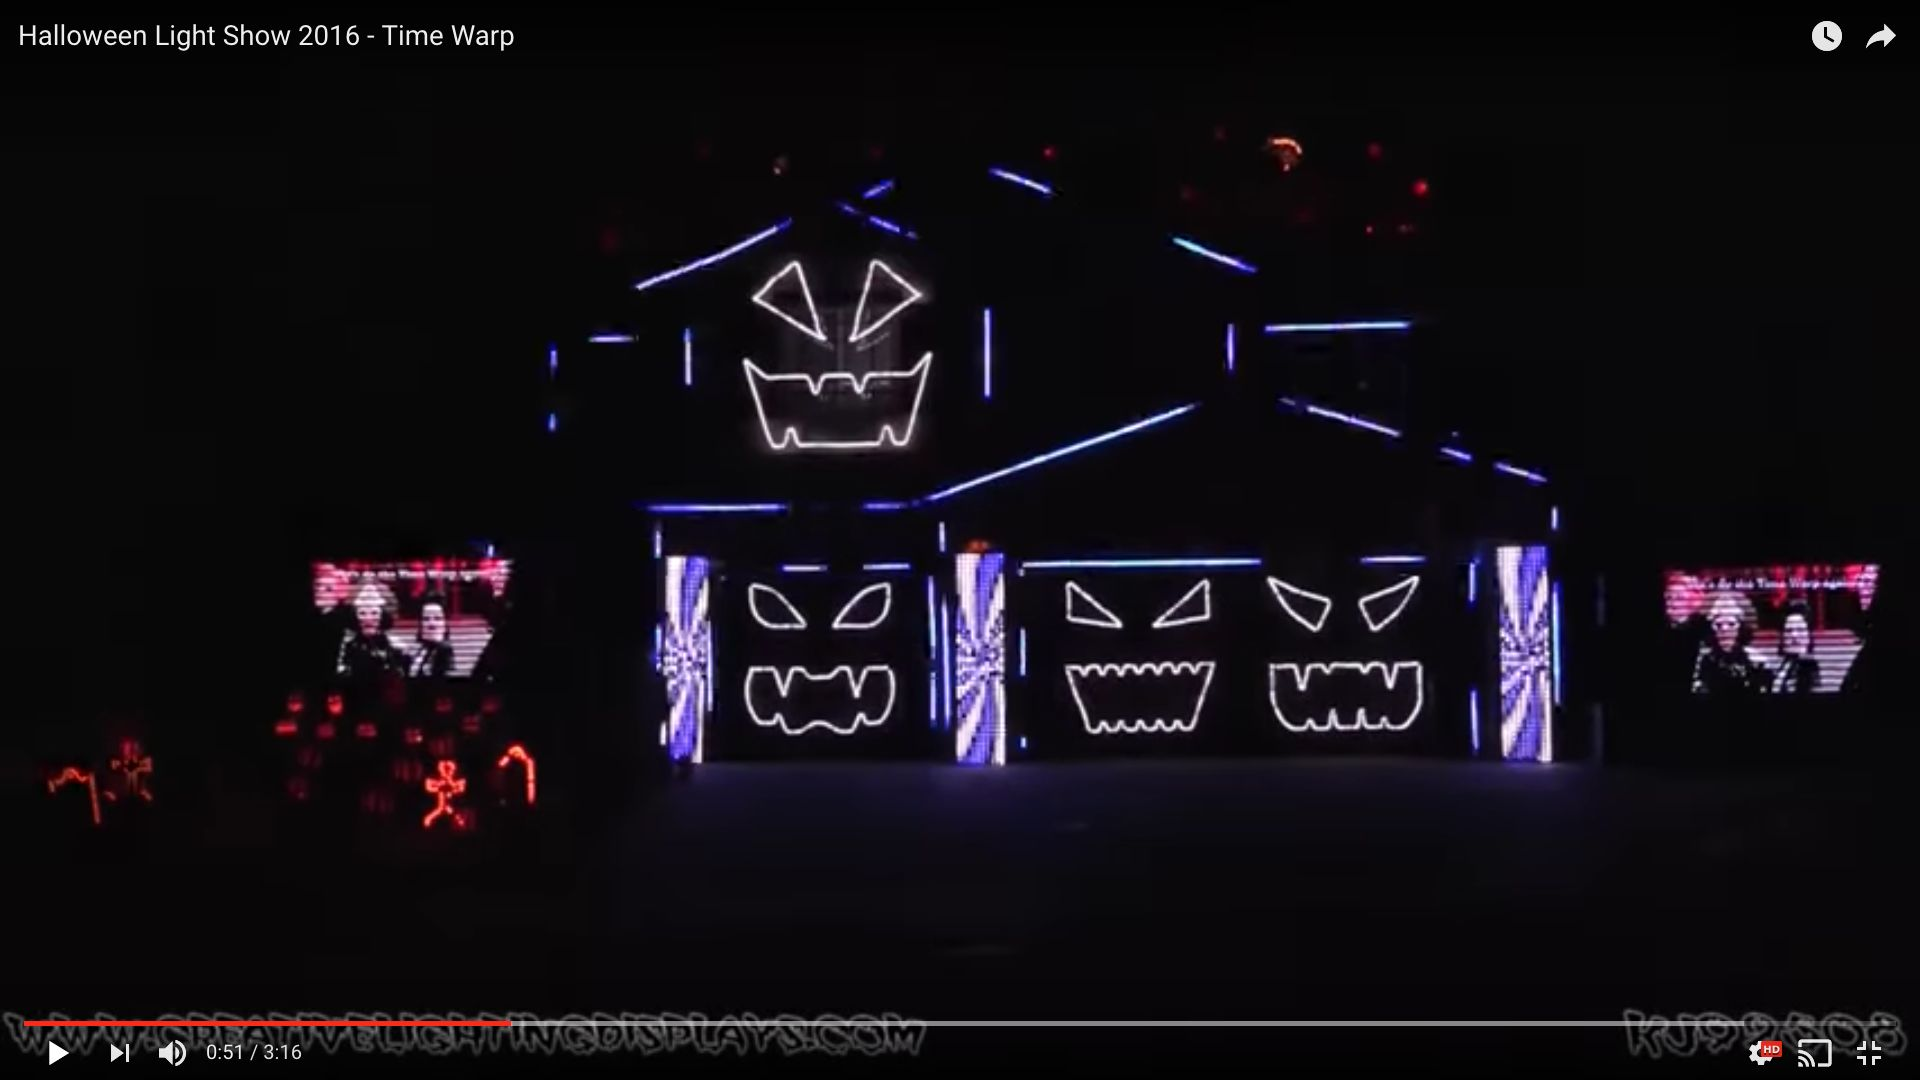 This Halloween light show in California promises a howling good time for viewers